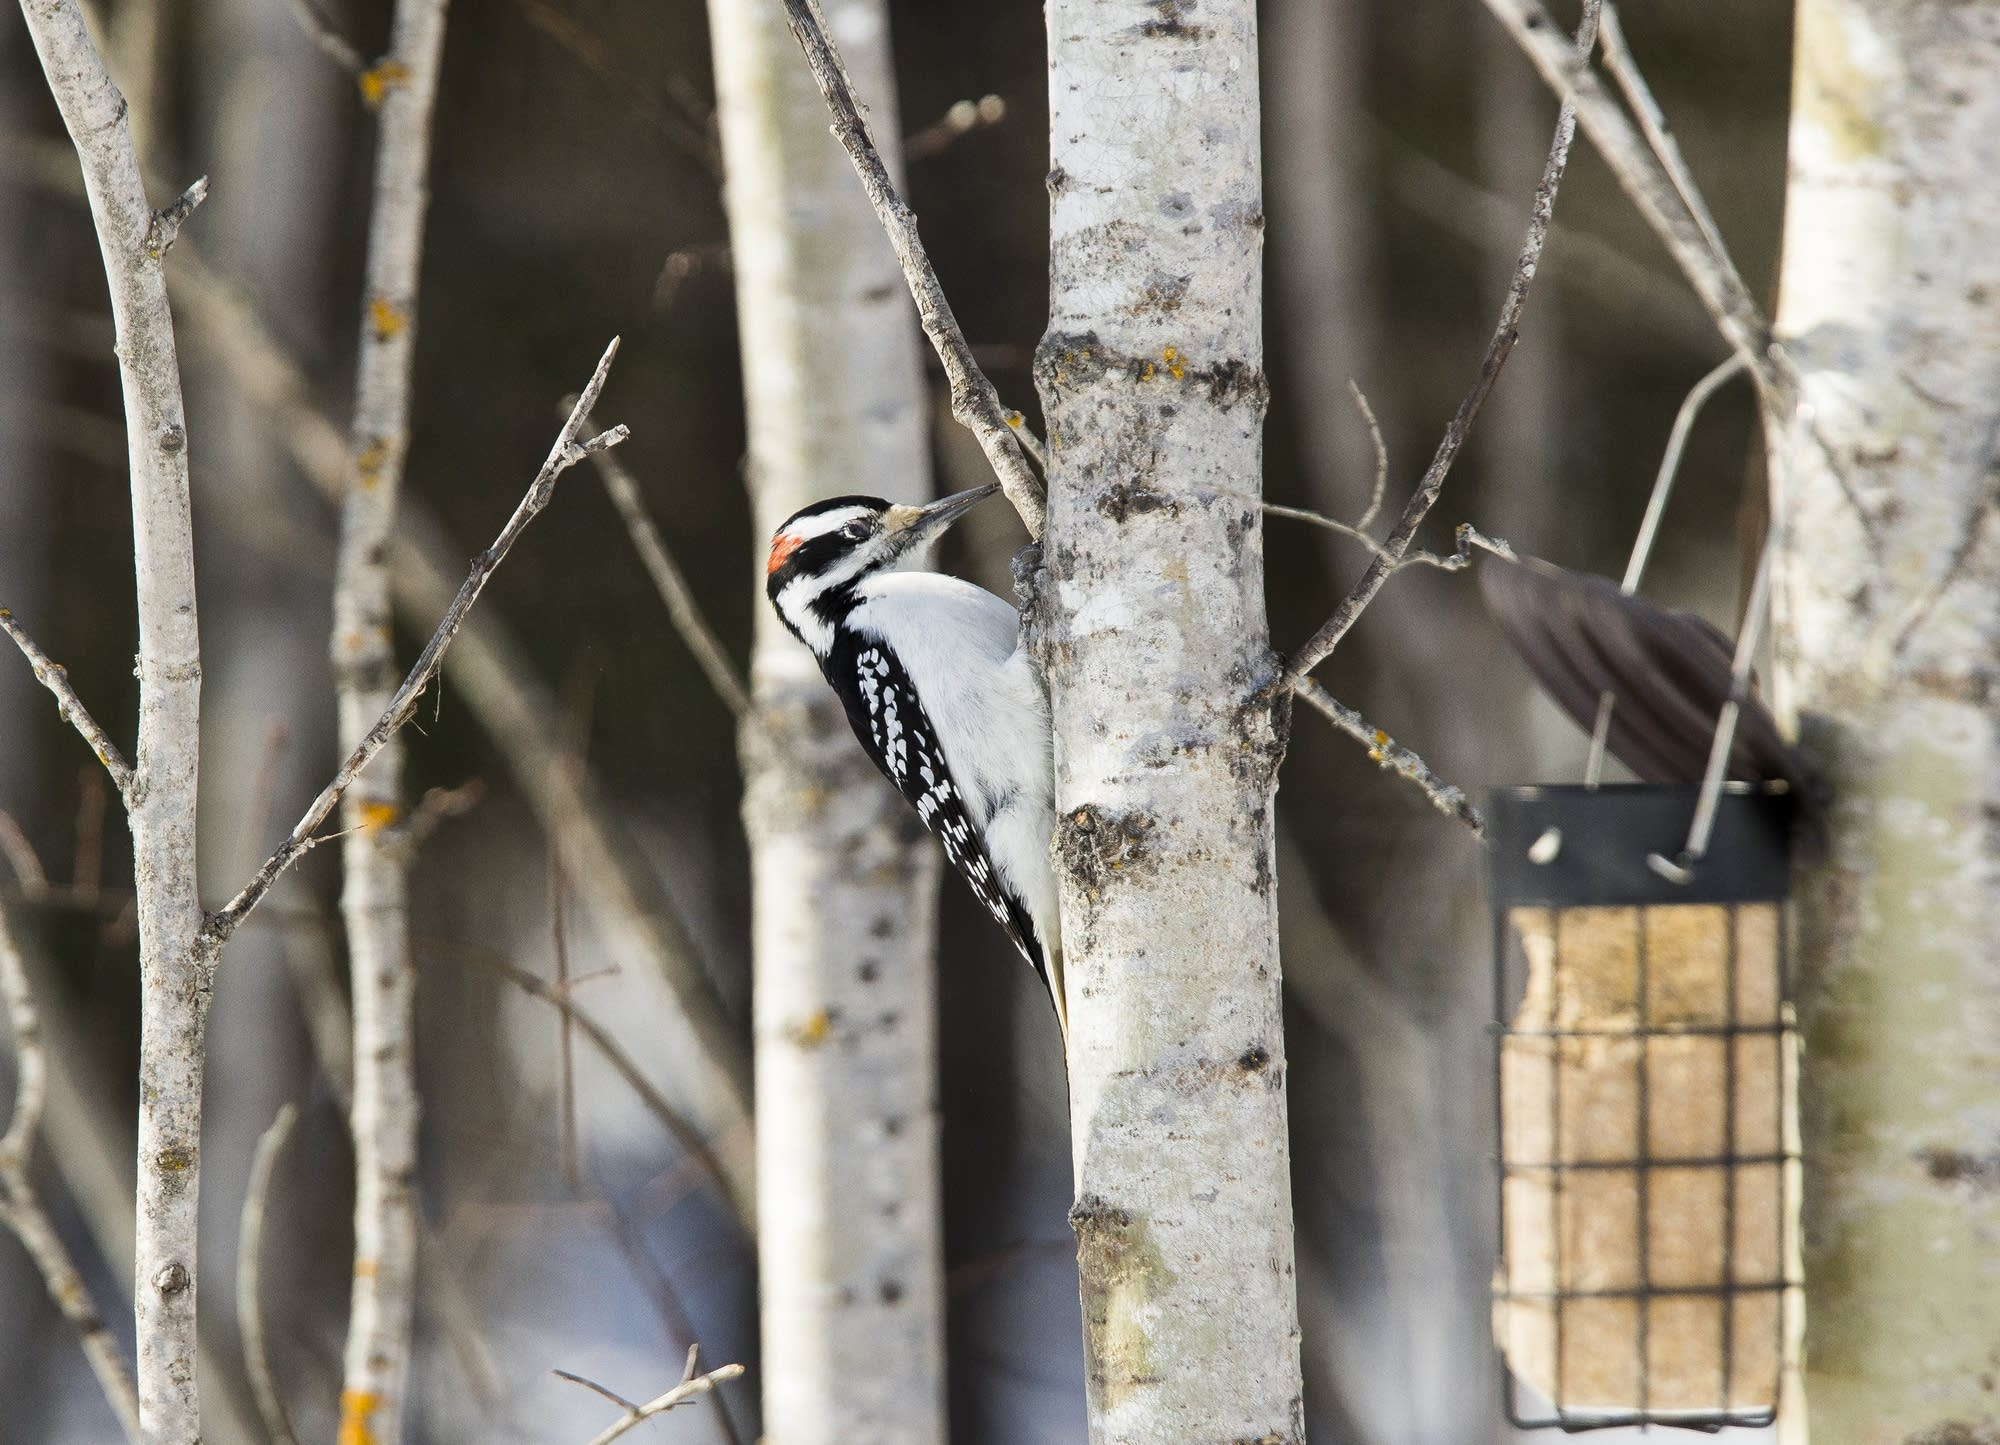 A hairy woodpecker clings to a birch tree